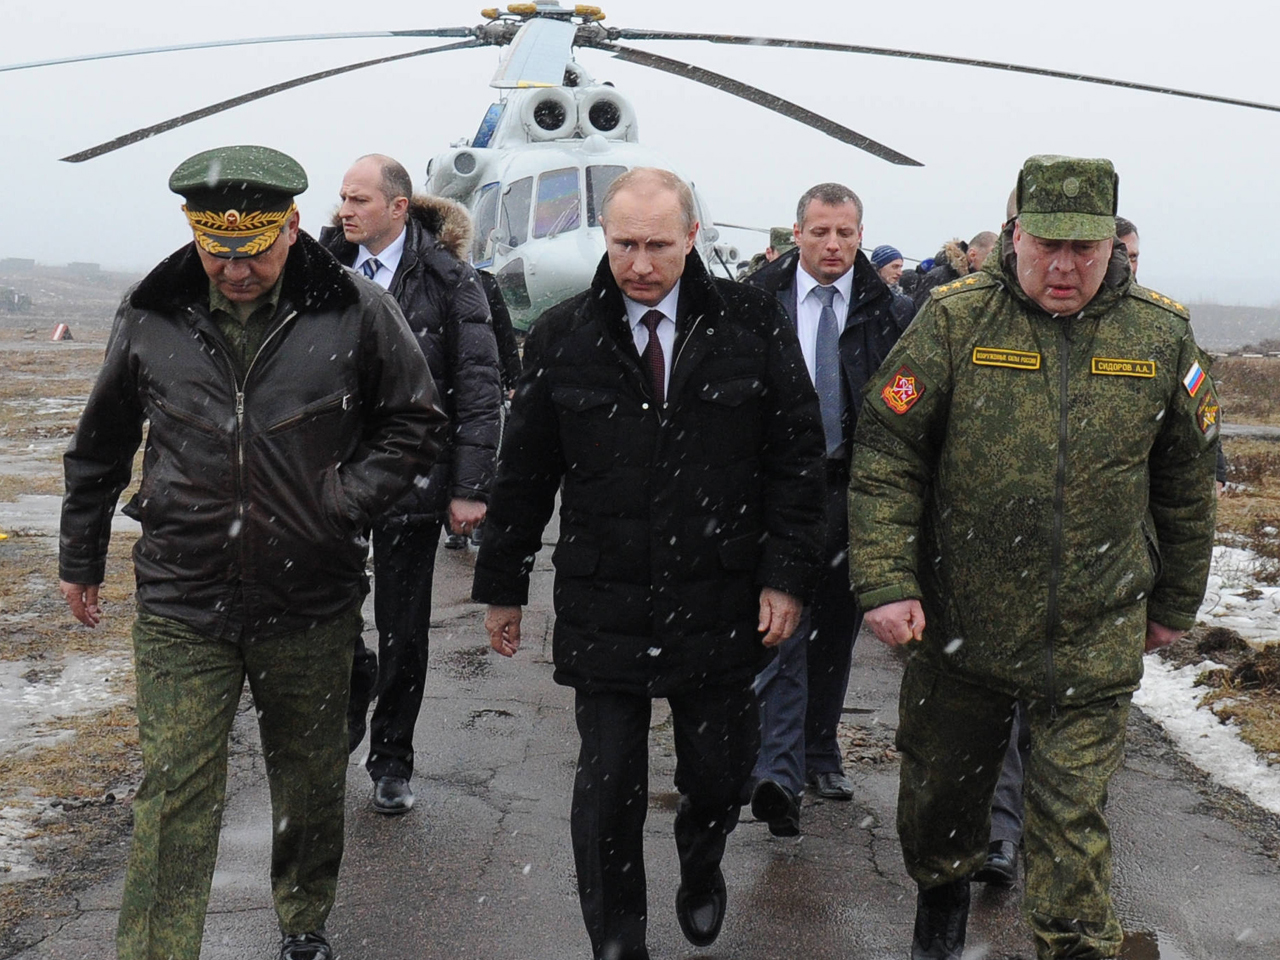 Russia Leader Vladimir Putin Says He Ll Protect Russians In Ukraine By Any Means But Hopes Force Not Required Cbs News